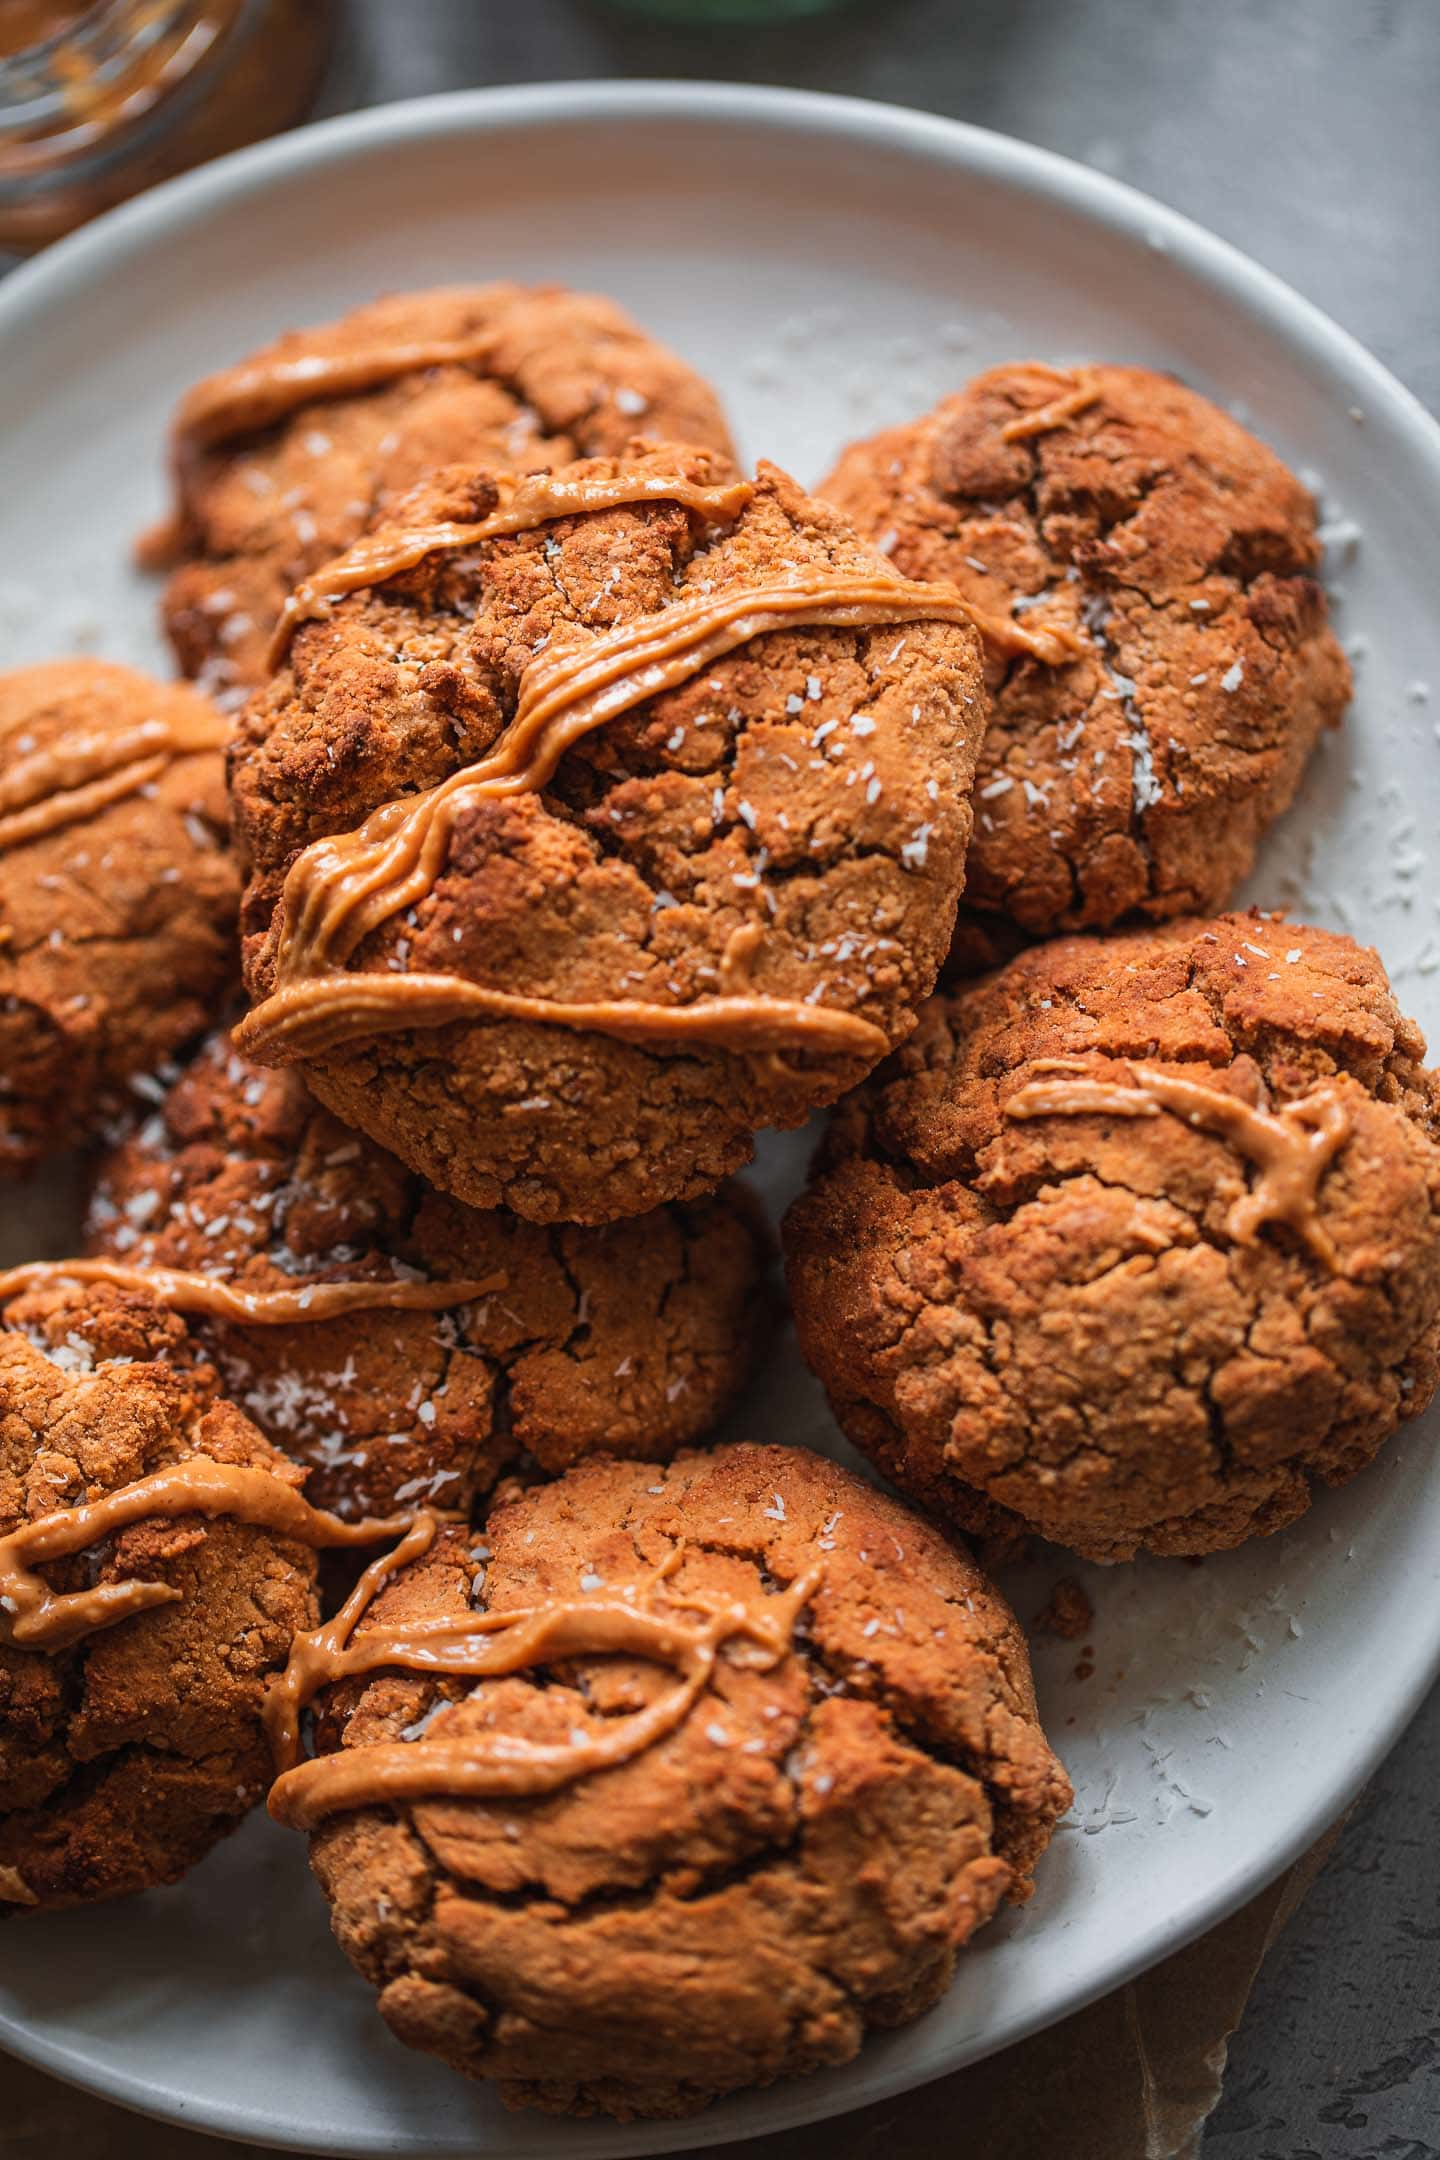 Gluten-free vegan cookies on a plate